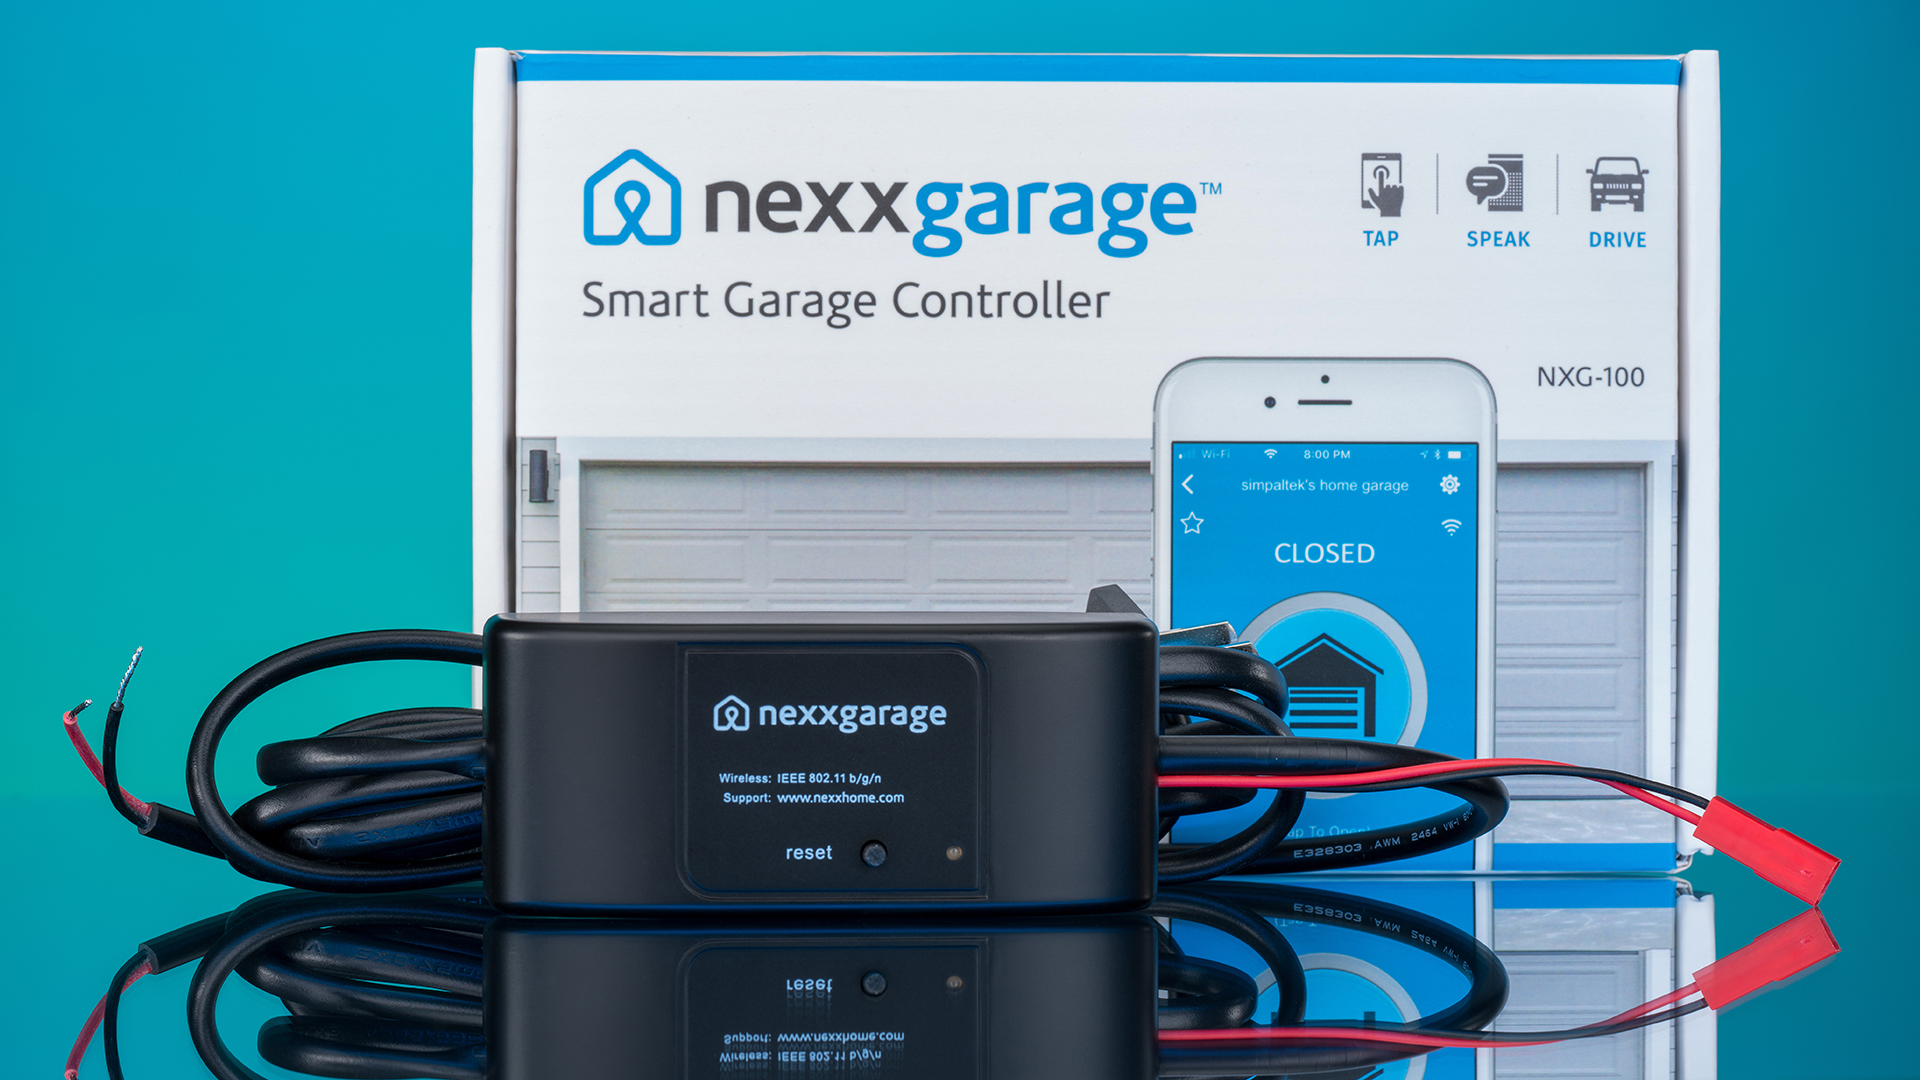 The new Nexx Garage smart garage door opener is a sleeker design from the original, but with the same remote operating and smart device capabilities. Nexx Garage gives any garage door the ability to be opened via smart phone, with added security and monitoring capabilities.